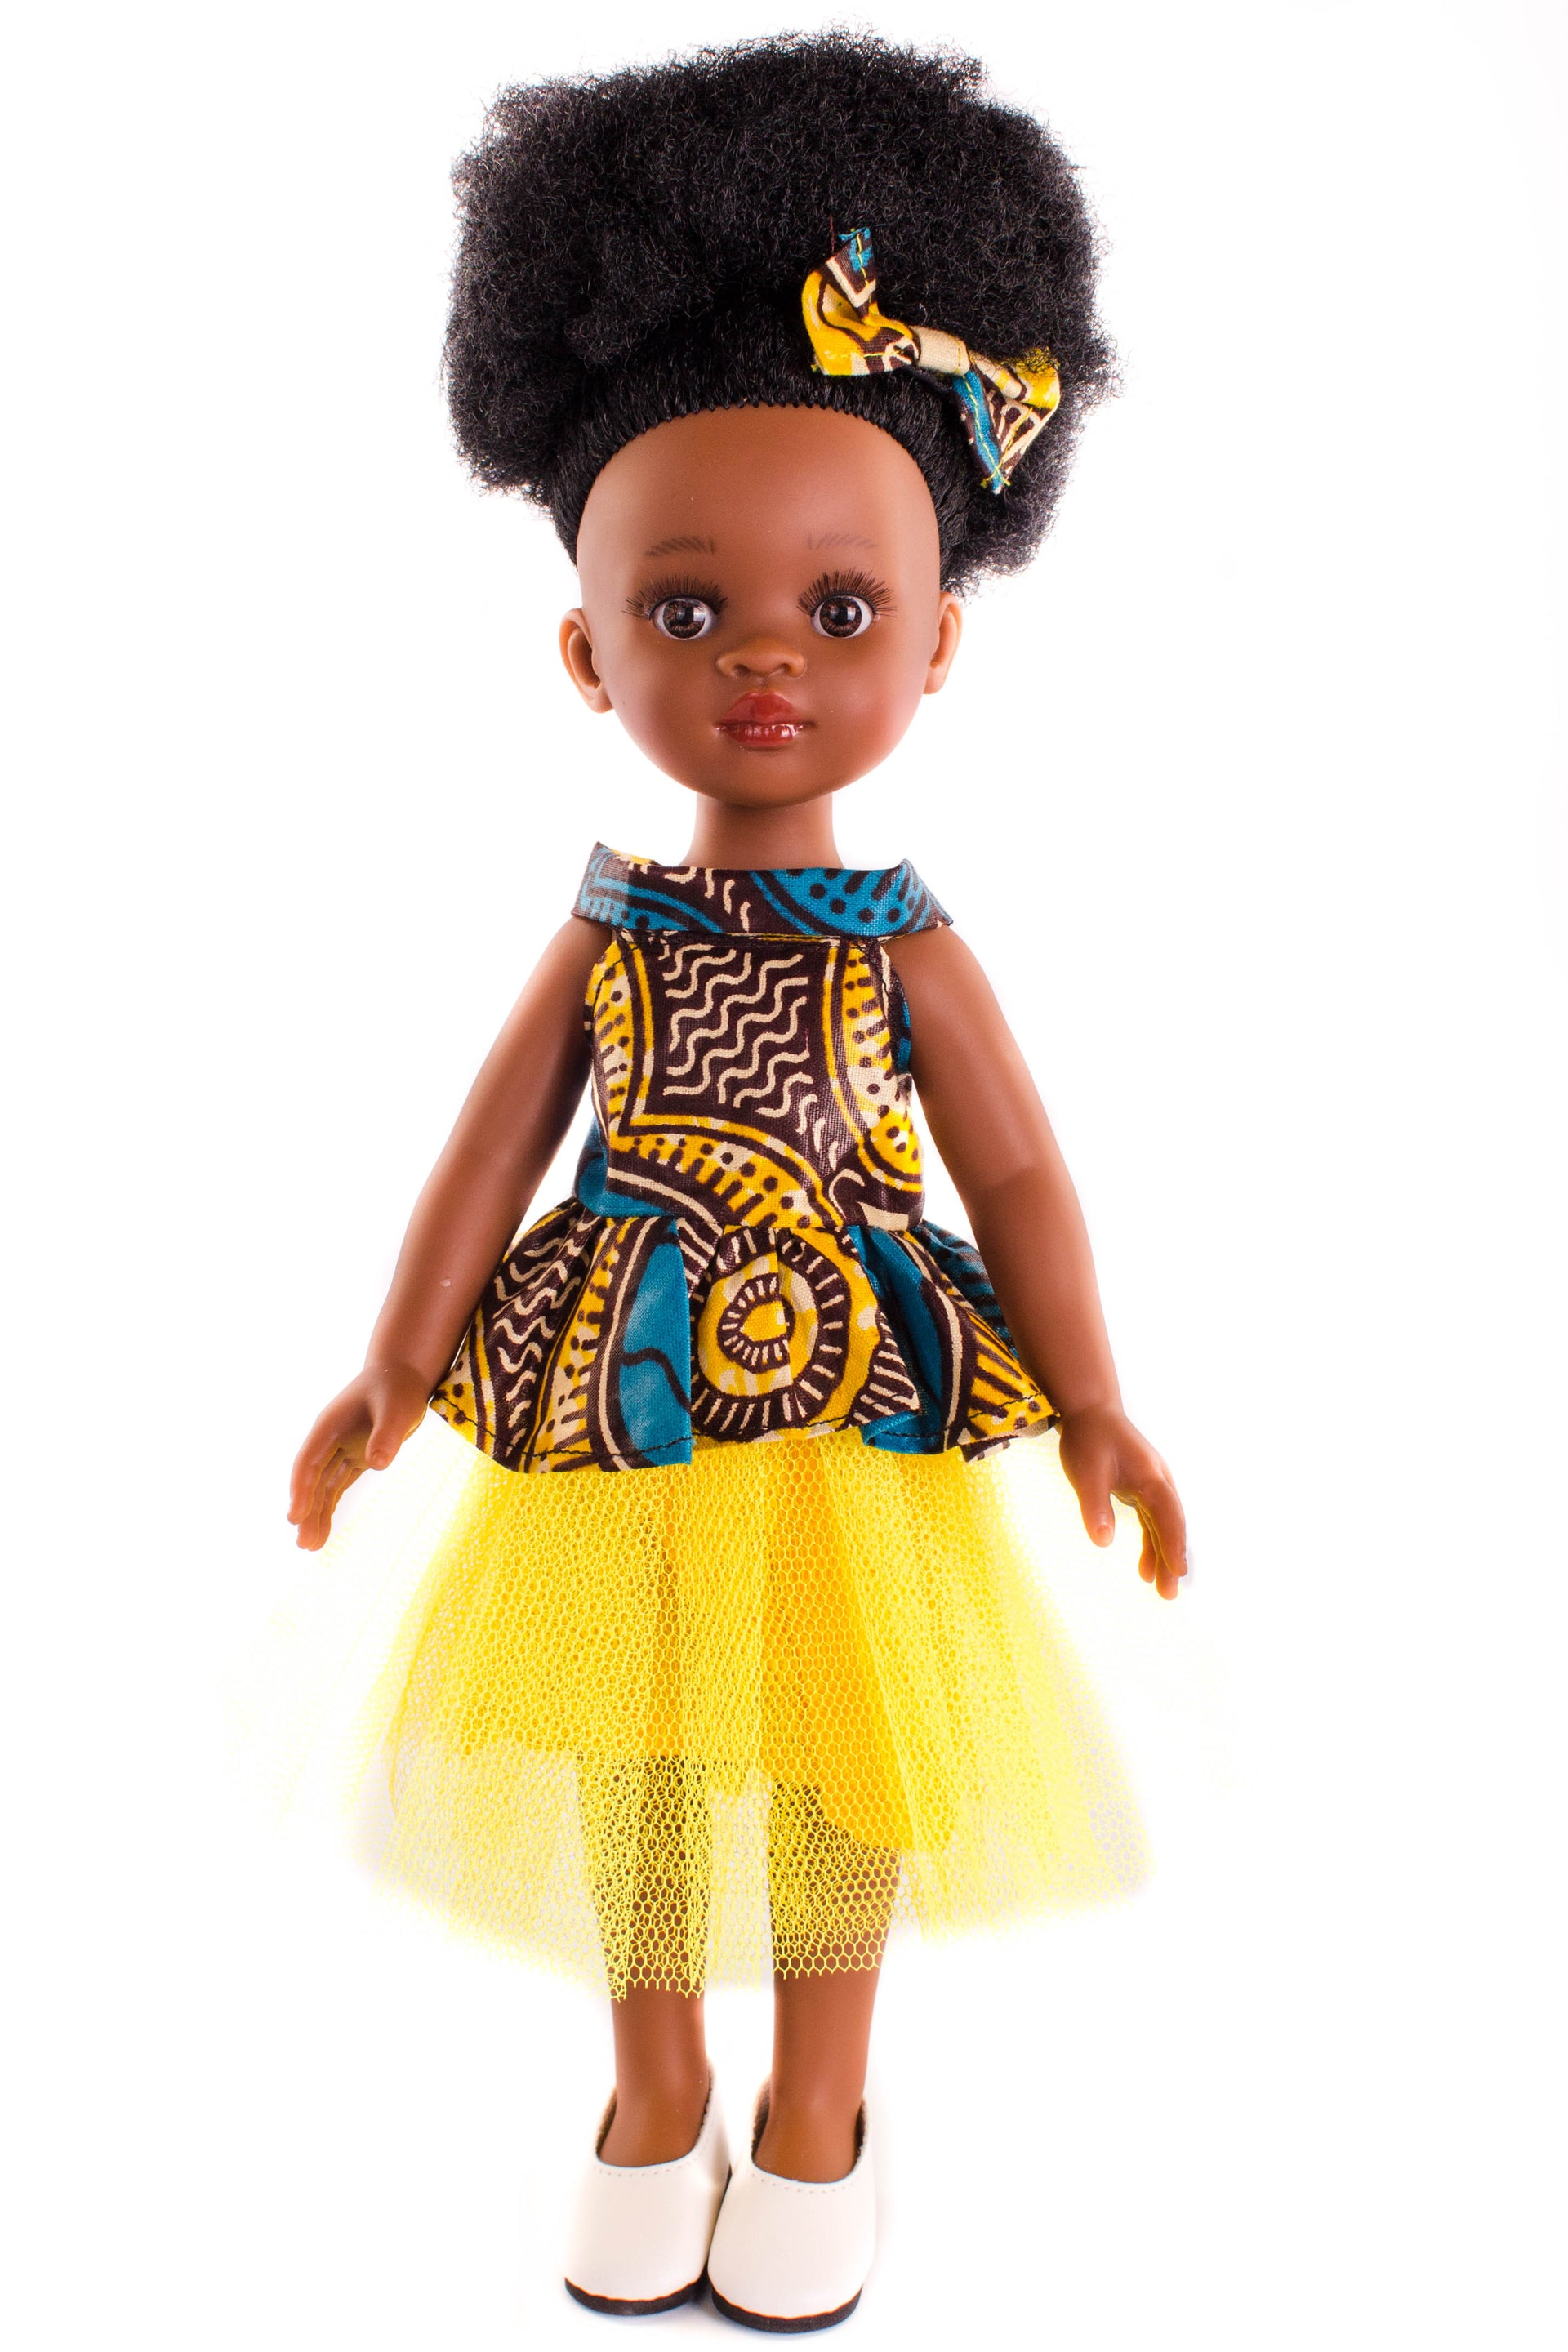 Bontle Princess Doll (28cms) - Dressed in Yellow - Bounce Essential Hair